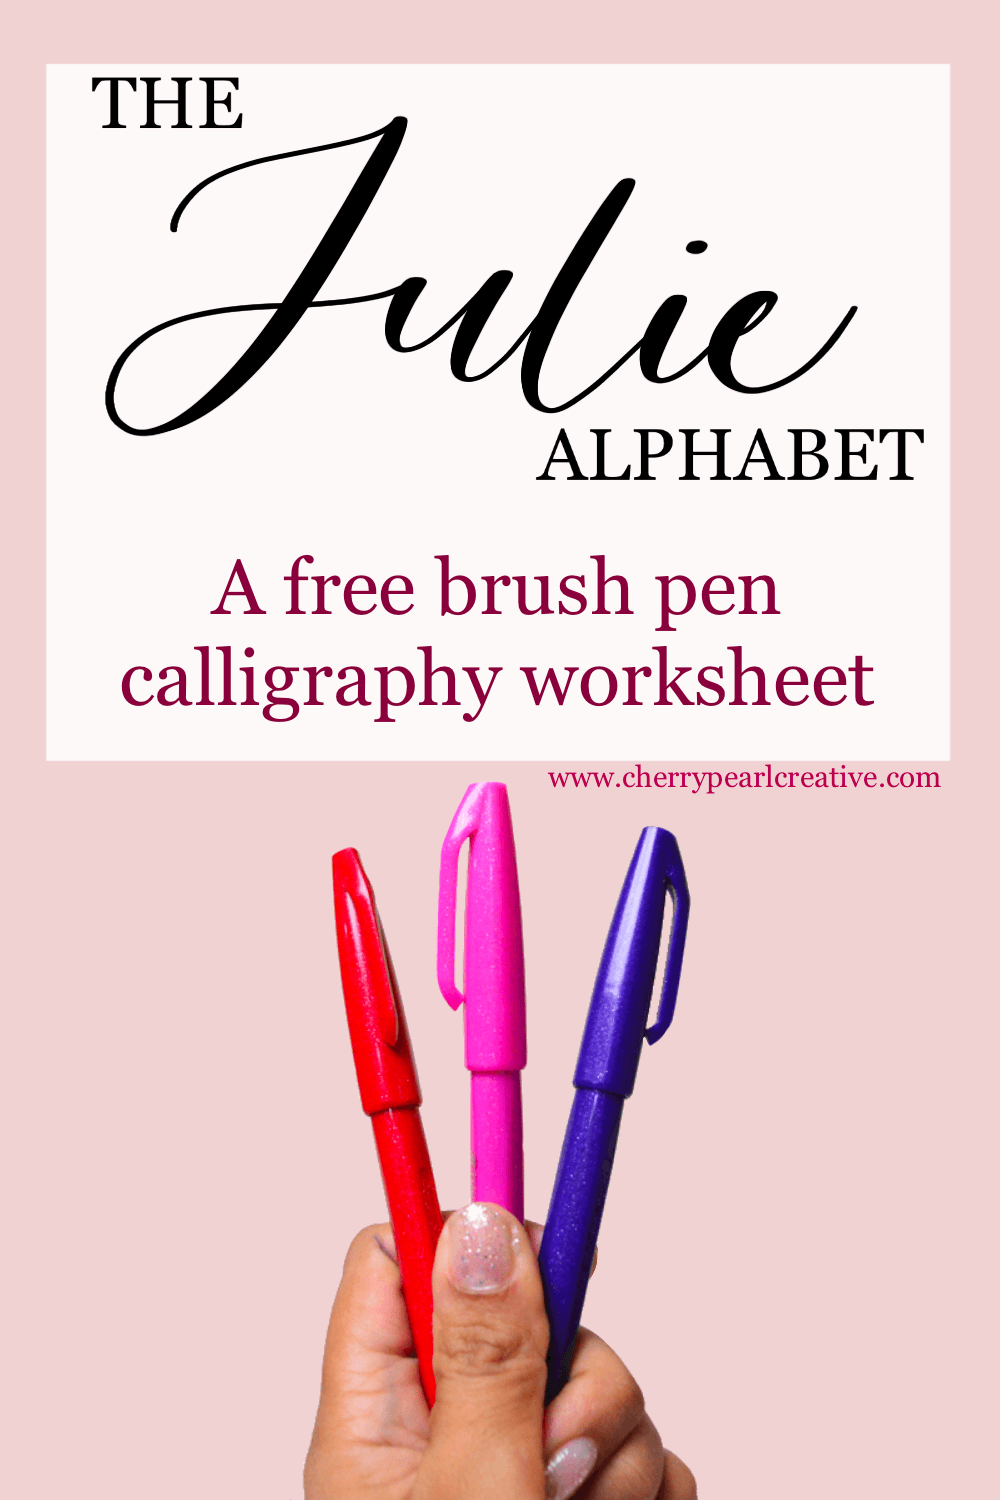 FREE brush pen calligraphy worksheet - from the resource Hub - Cherry Pearl Creative